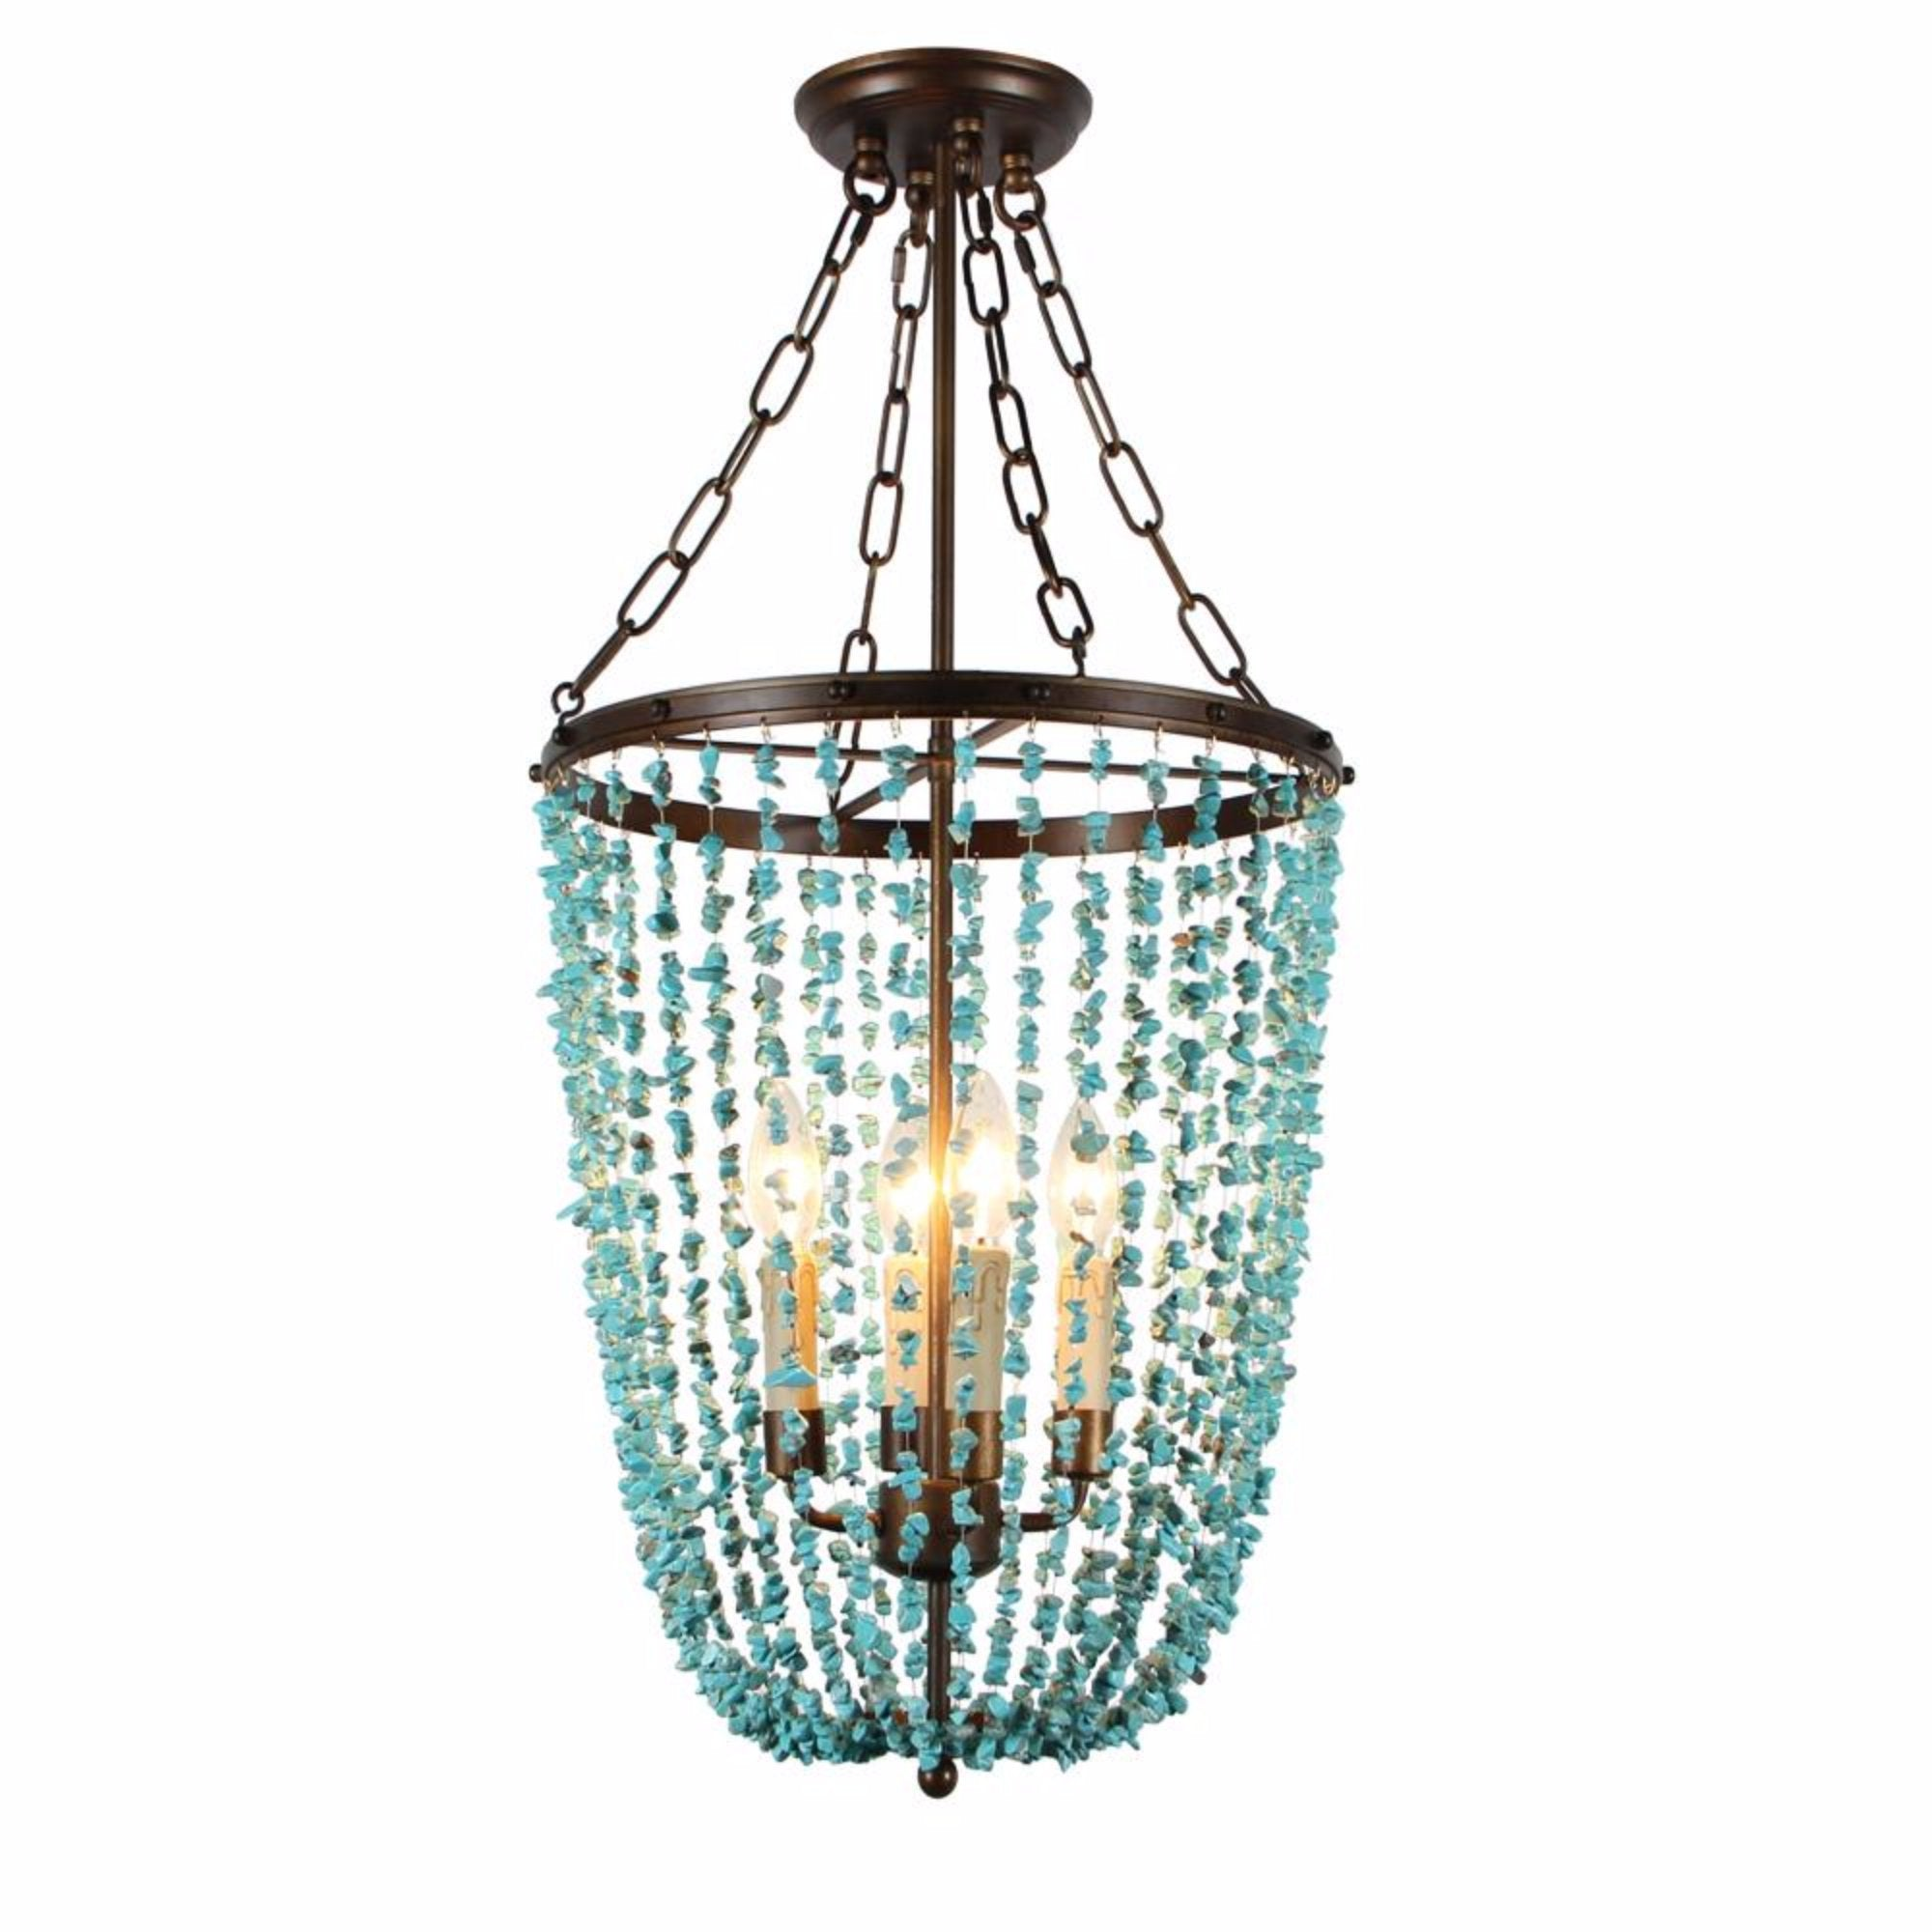 Tempeste Turquoise Beaded Empire Chandelier